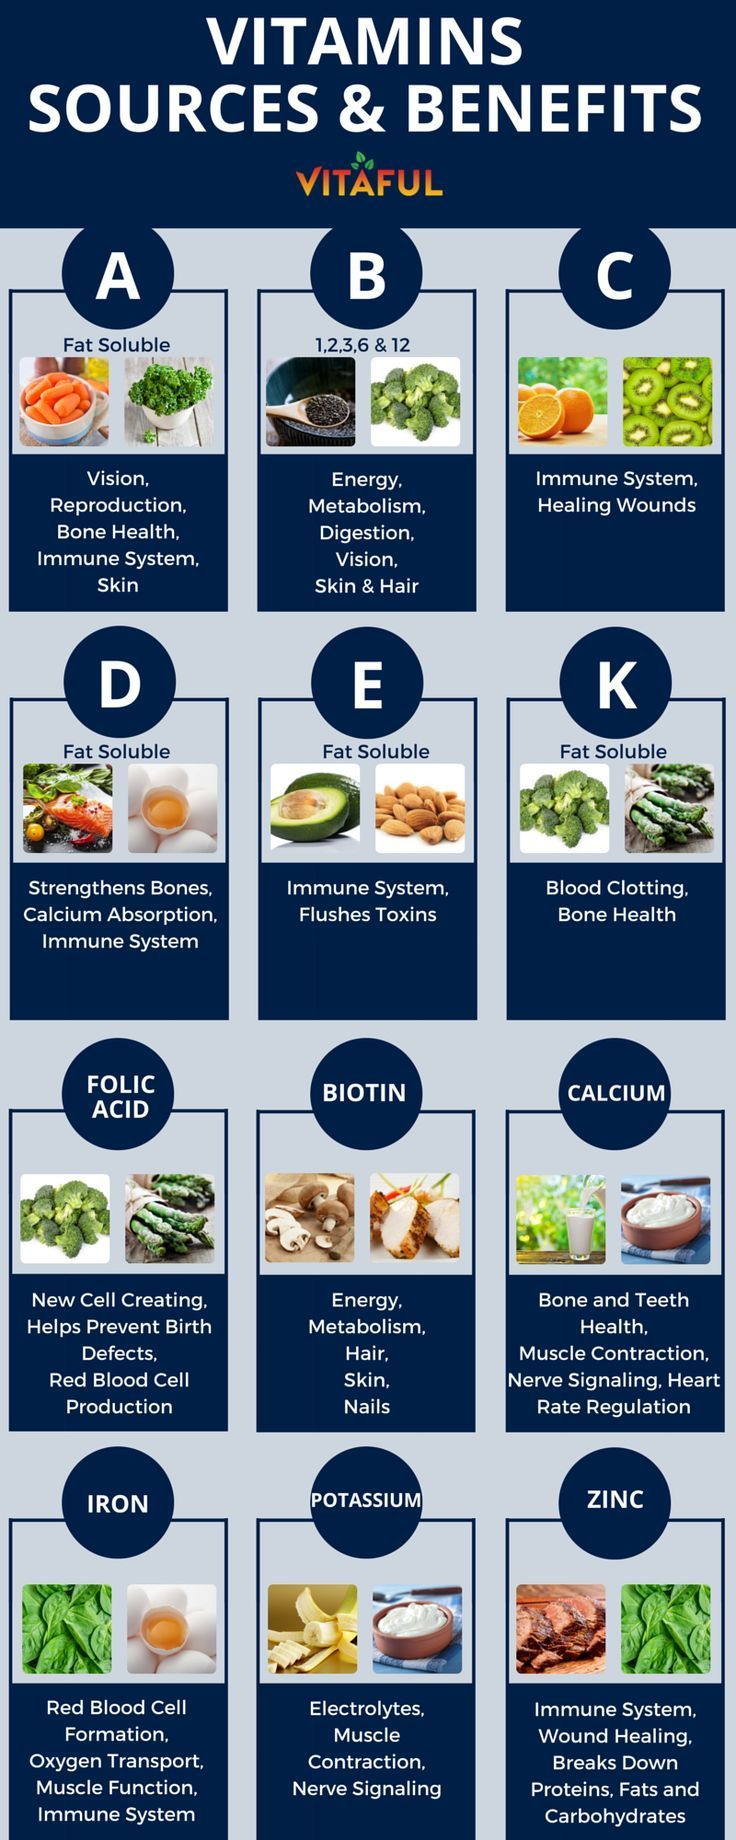 THE BEST SUPPLEMENT TO ENHANCE PERFORMANCE! Vitamins - Food Sources and Benefits. Includes Vitamins A, B, C, D, E, K and More | Supplements | Wellness Tips | Health Infographic |